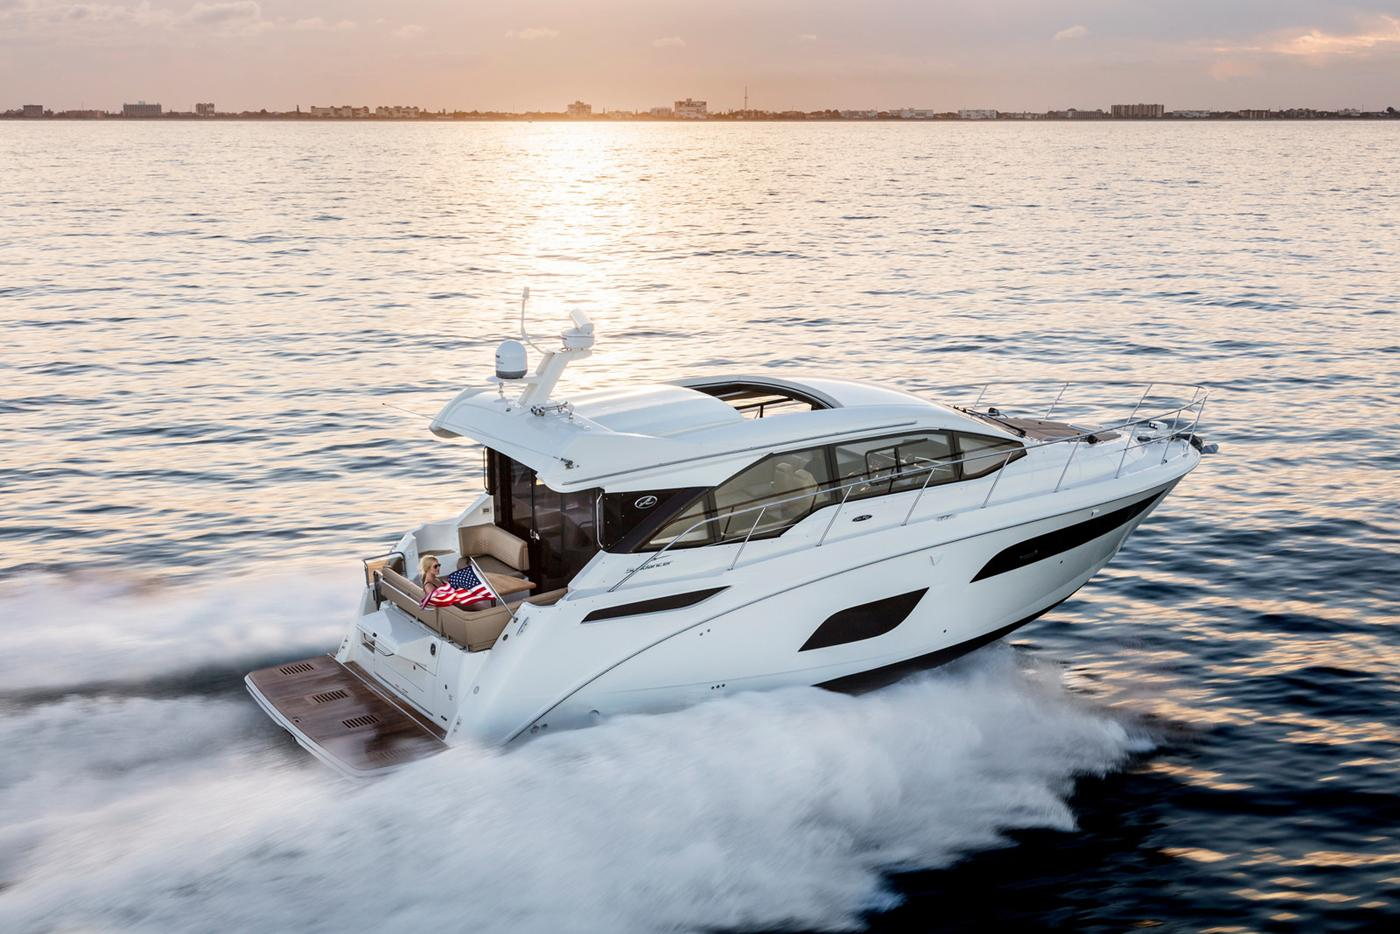 2018 Sea Ray boat for sale, model of the boat is 460 Sundancer & Image # 56 of 2914